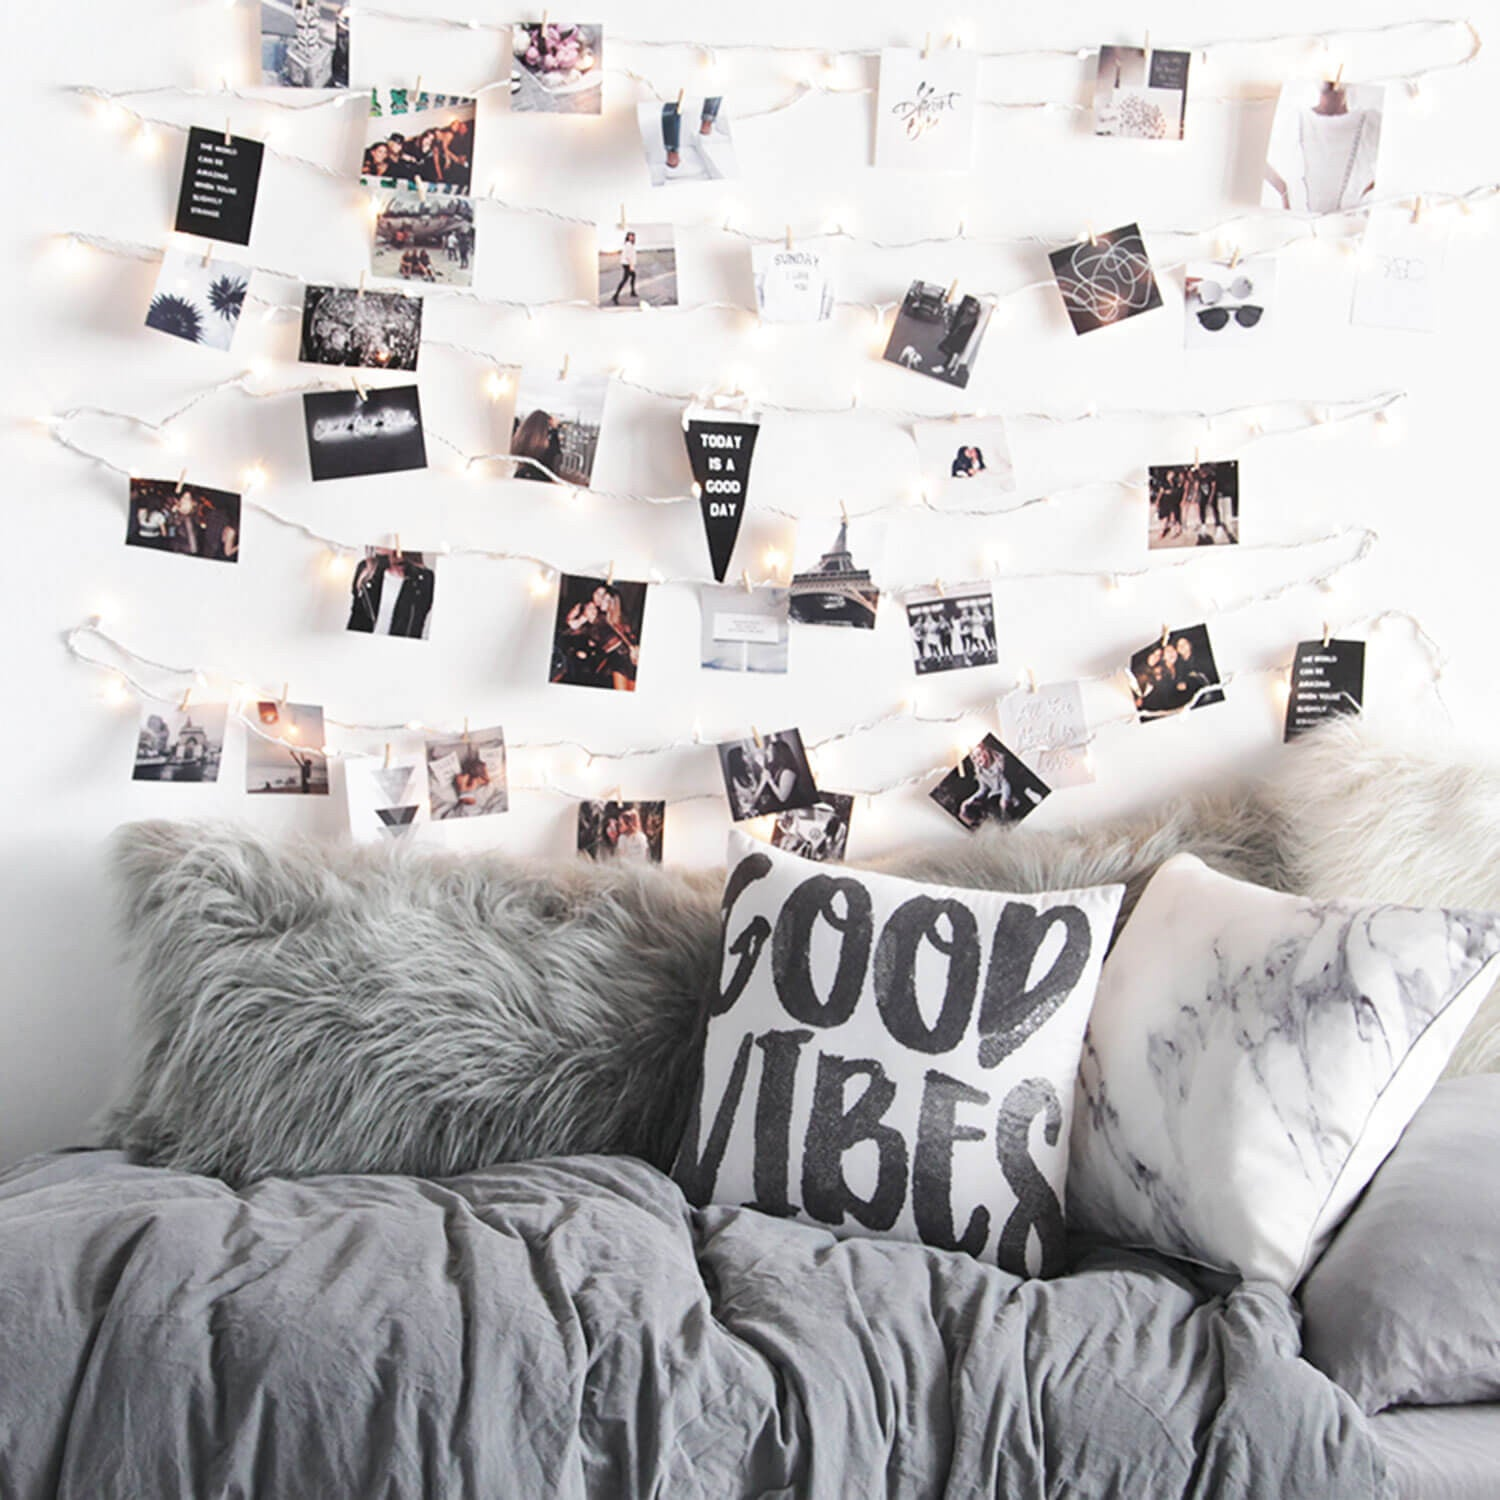 Good Vibes Room Dormify